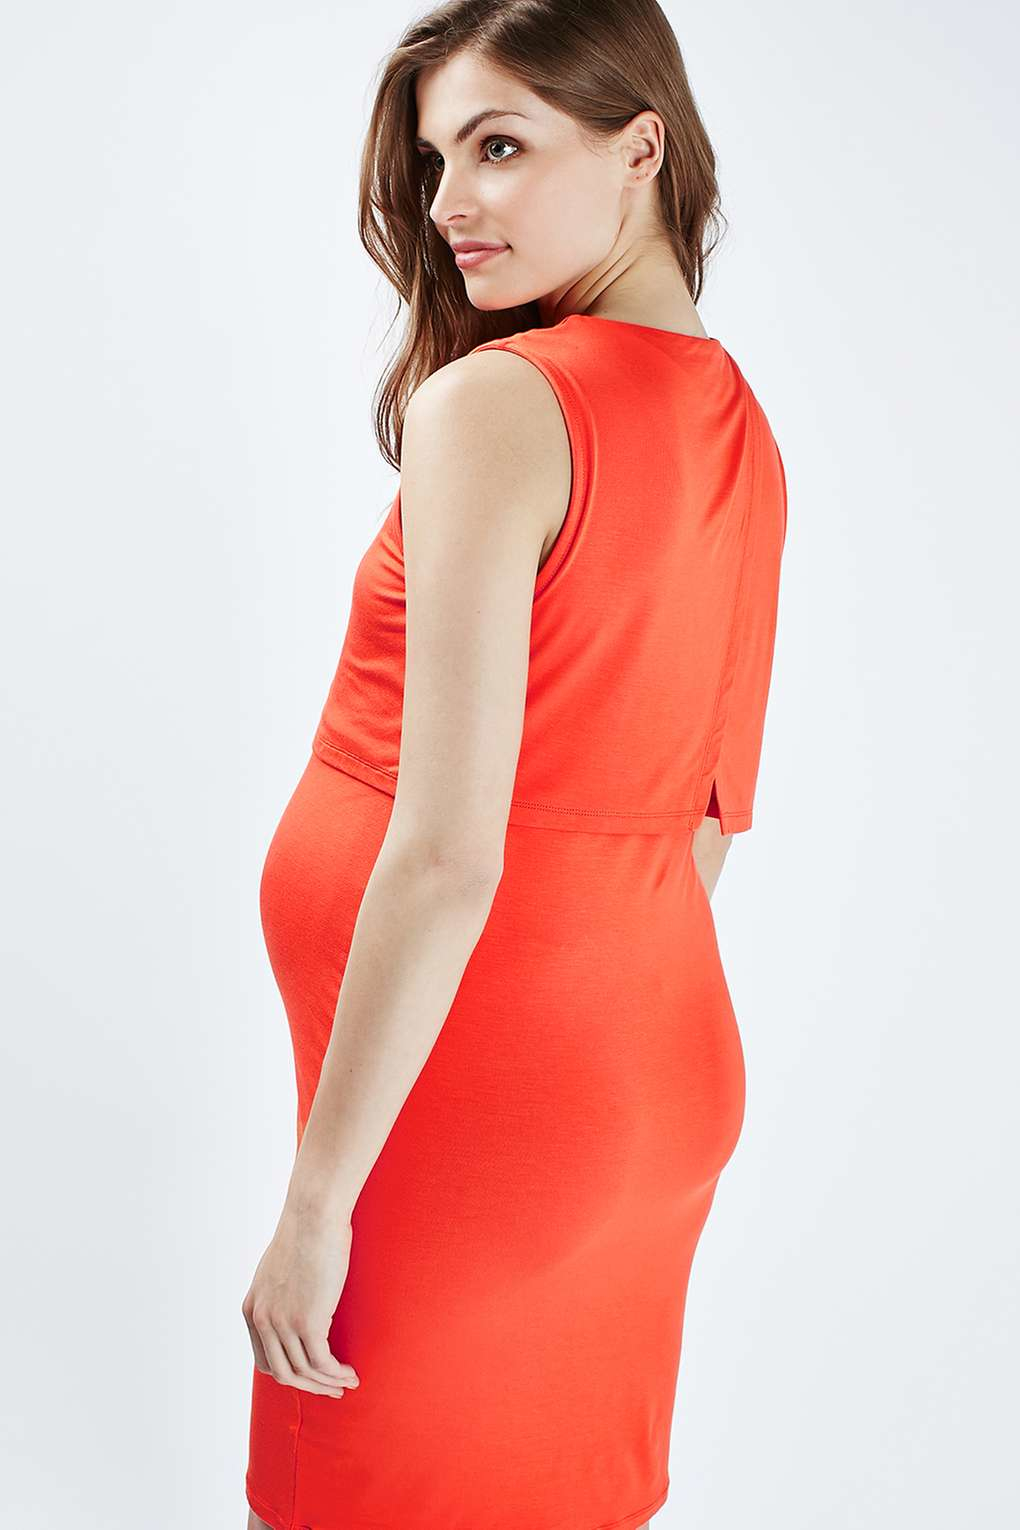 Find Topshop maternity clothing at ShopStyle. Shop the latest collection of Topshop maternity clothing from the most popular stores - all in one.